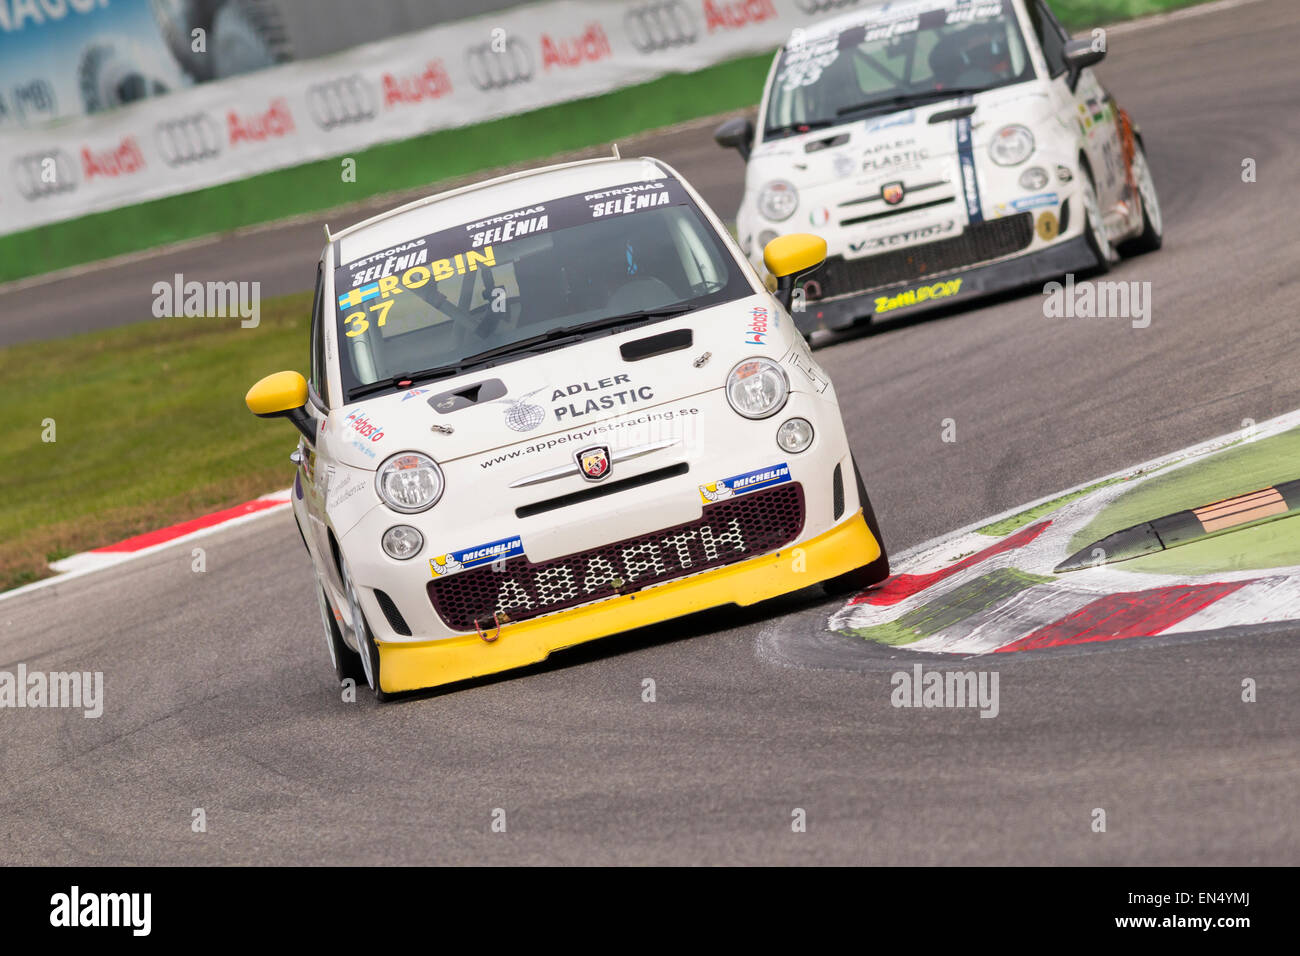 hight resolution of monza italy october 25 2014 fiat abarth 500 of lmp engineer team driven by appelqvist robin